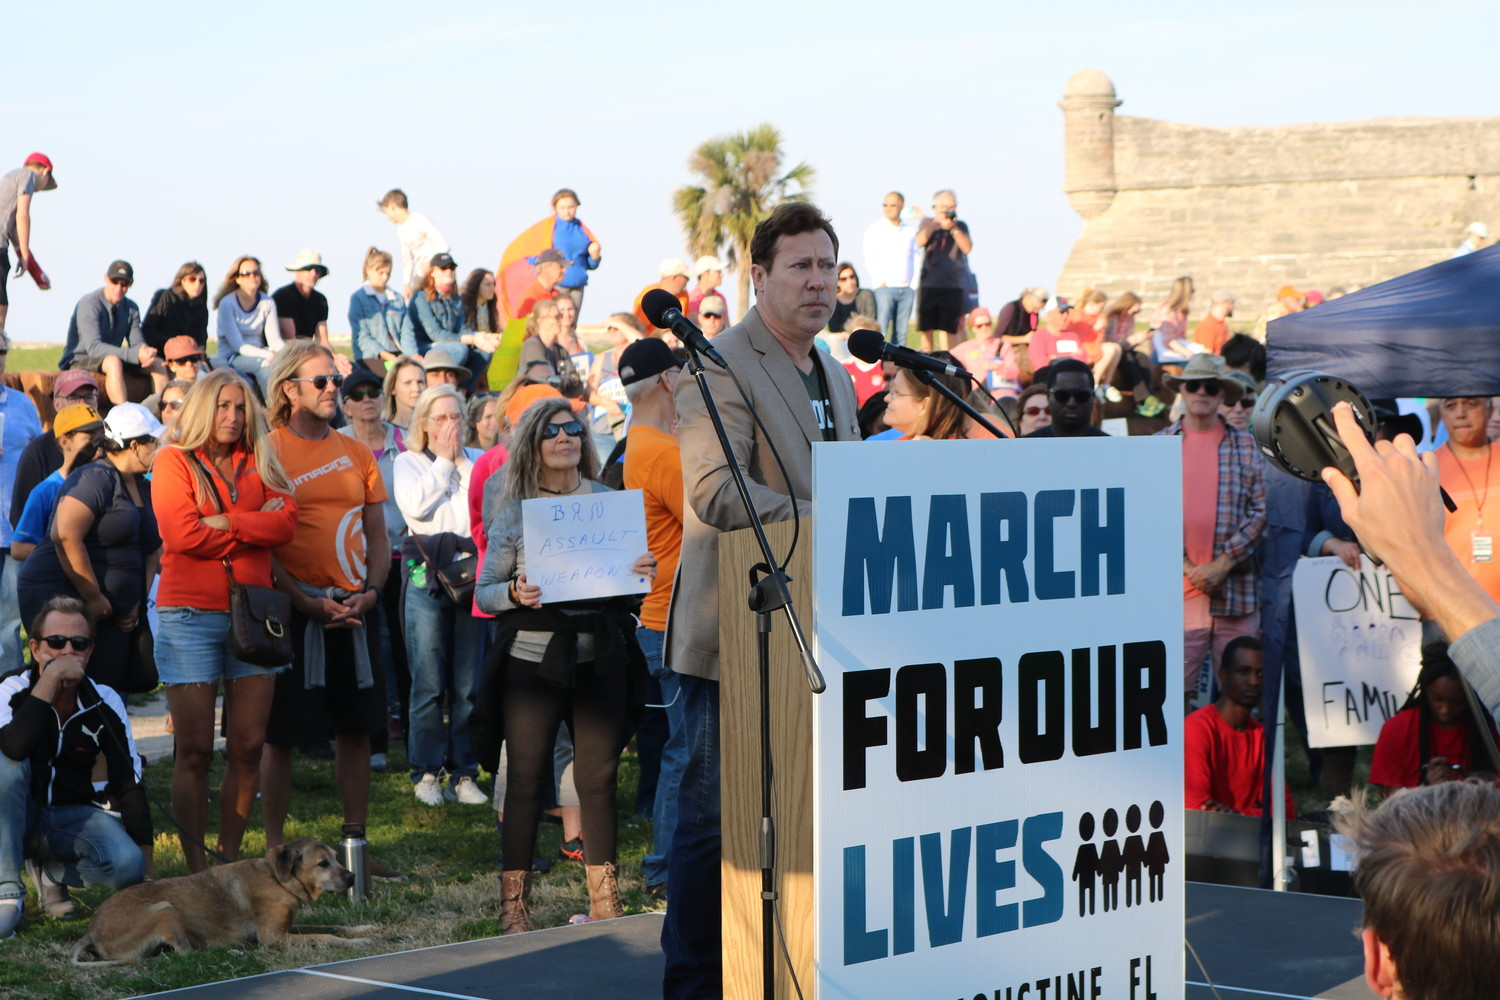 Ges Selmont, candidate for U.S. Congress 4th District, addresses the rally at the March for Our Lives event in St. Augustine on March 24.